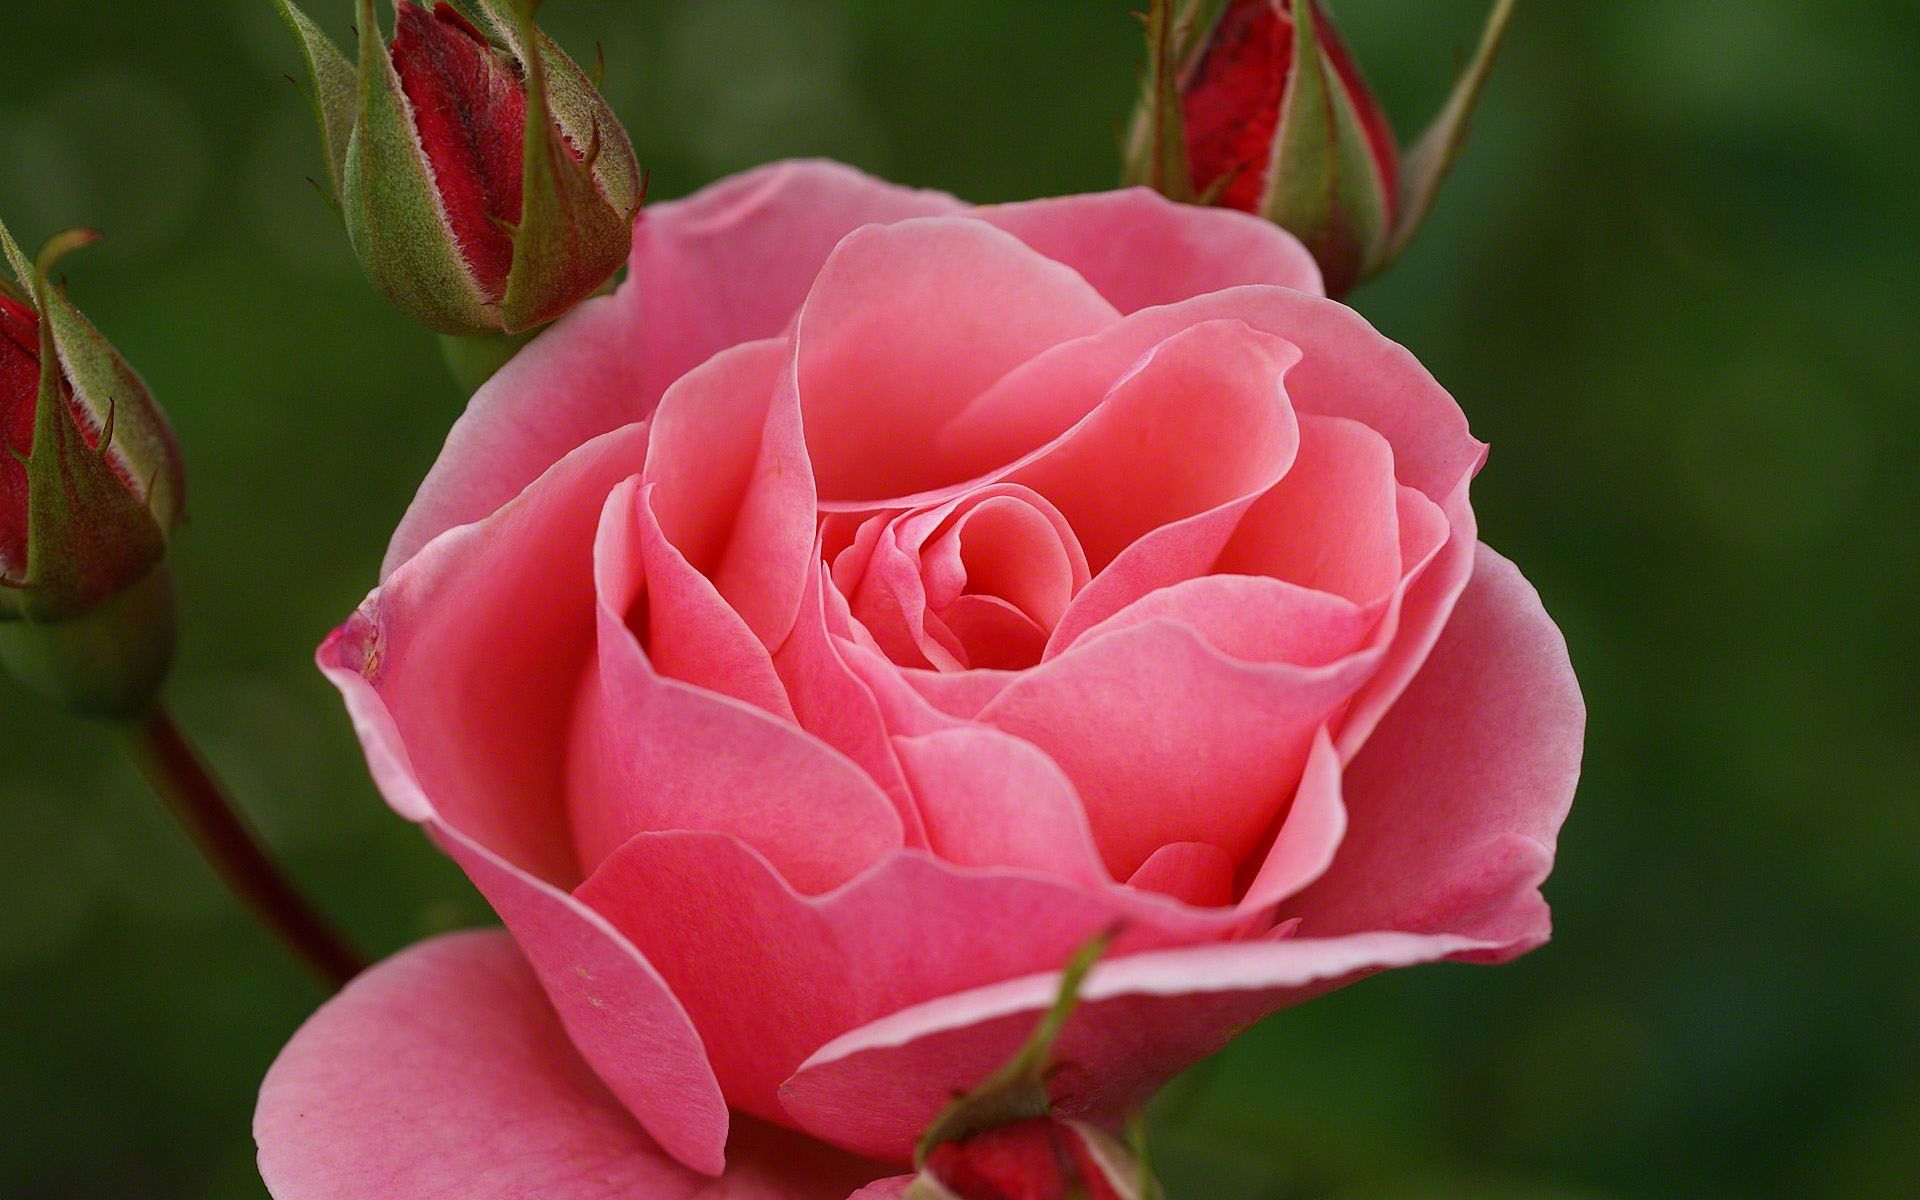 les plus belles roses du monde | wallpaper, rose, beautiful, world